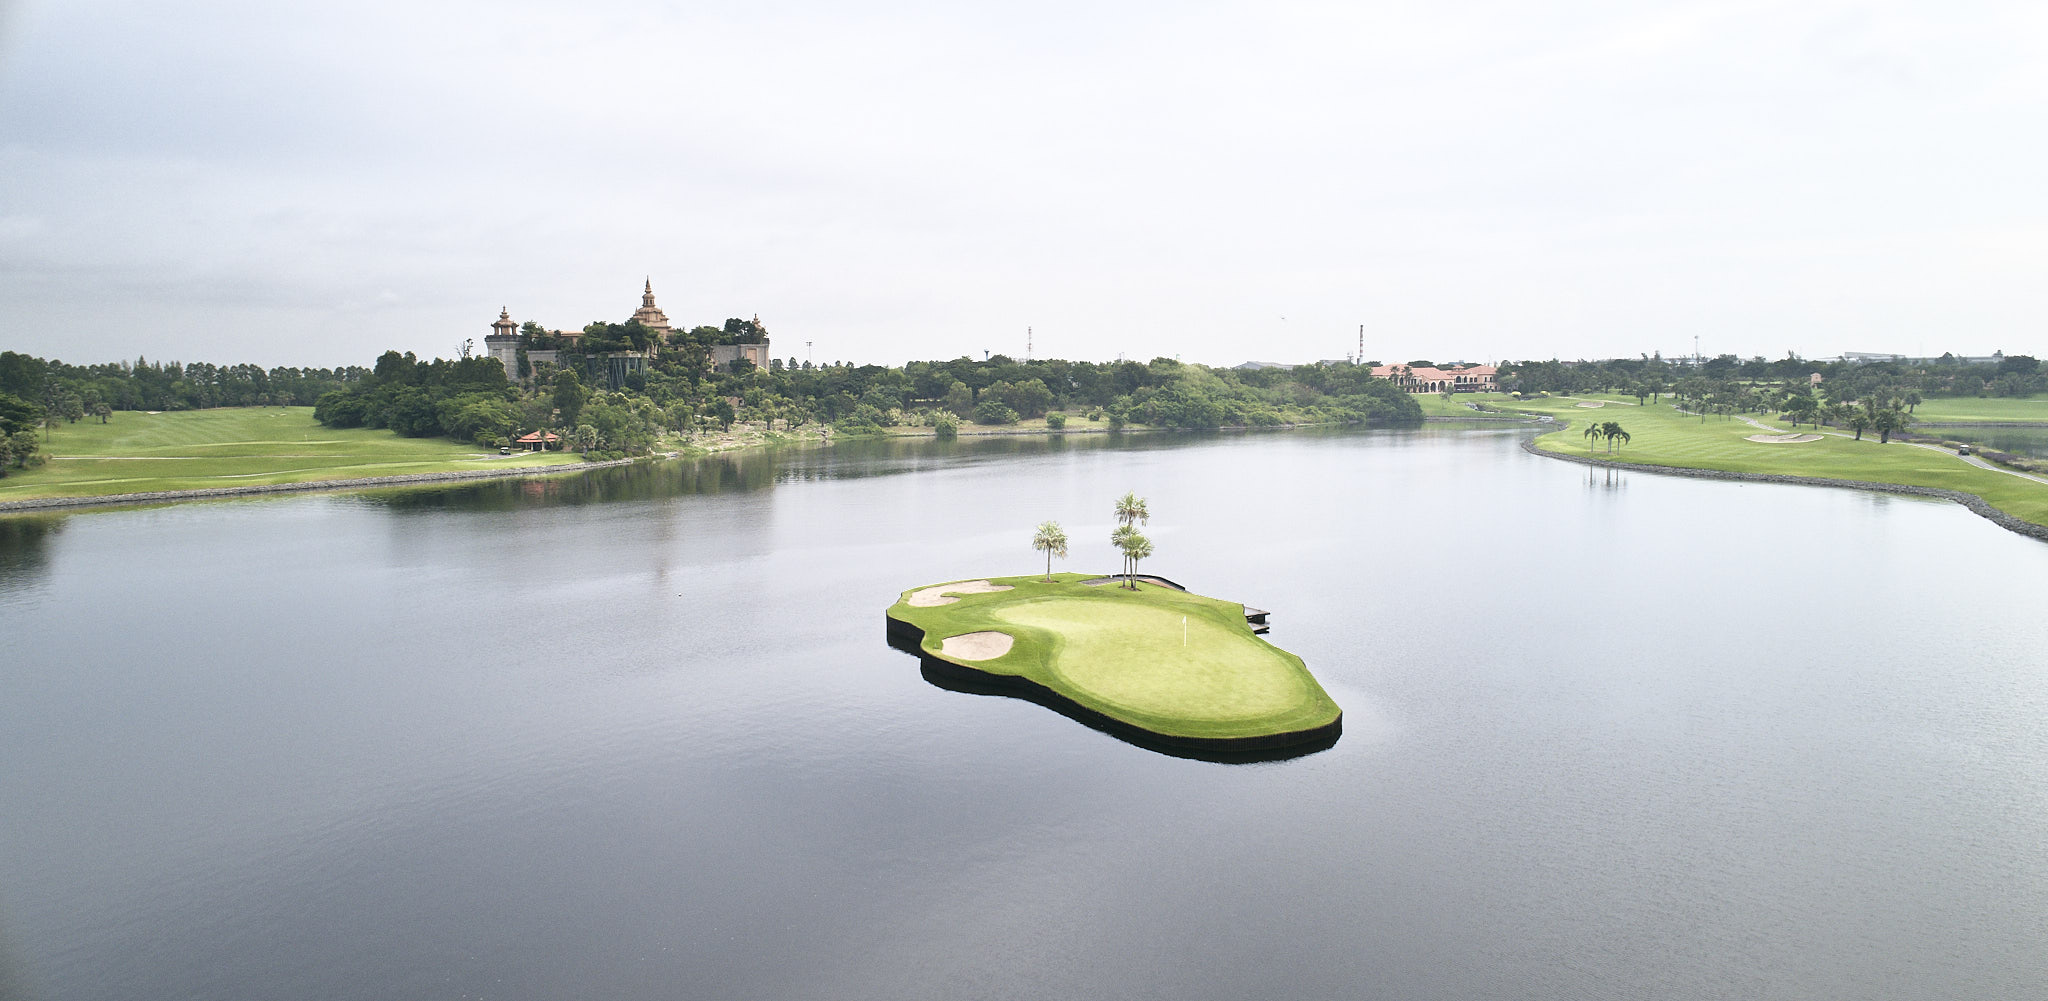 This island green weights 22 tons and its construction is a engineering prowess